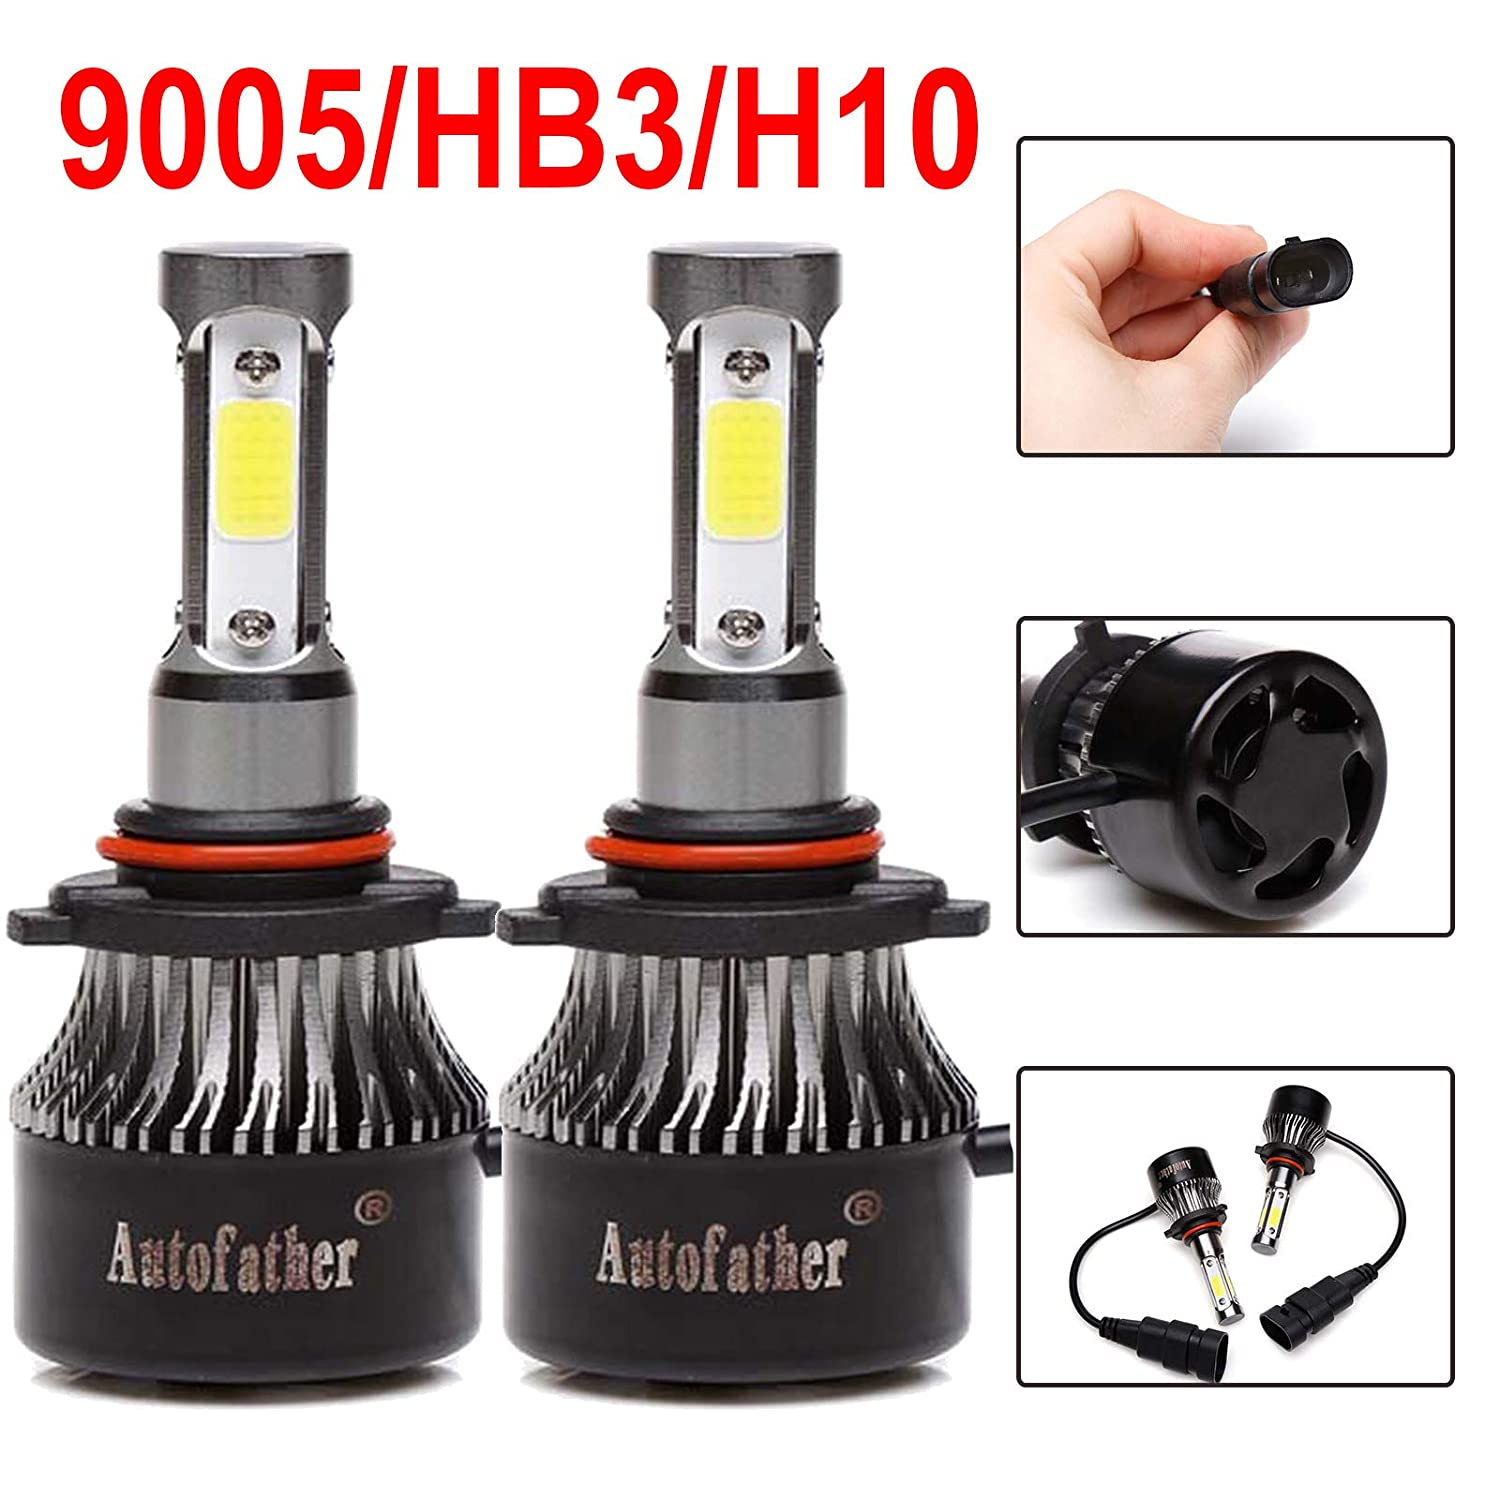 Amazon.com: 9005 H11 LED Headlight High Beam/Low Beam Combo Set For Chevy Silverado 1500/2500 HD / 3500 HD (2008-2015), 4 Sides COB Chips 12000LM High Power ...